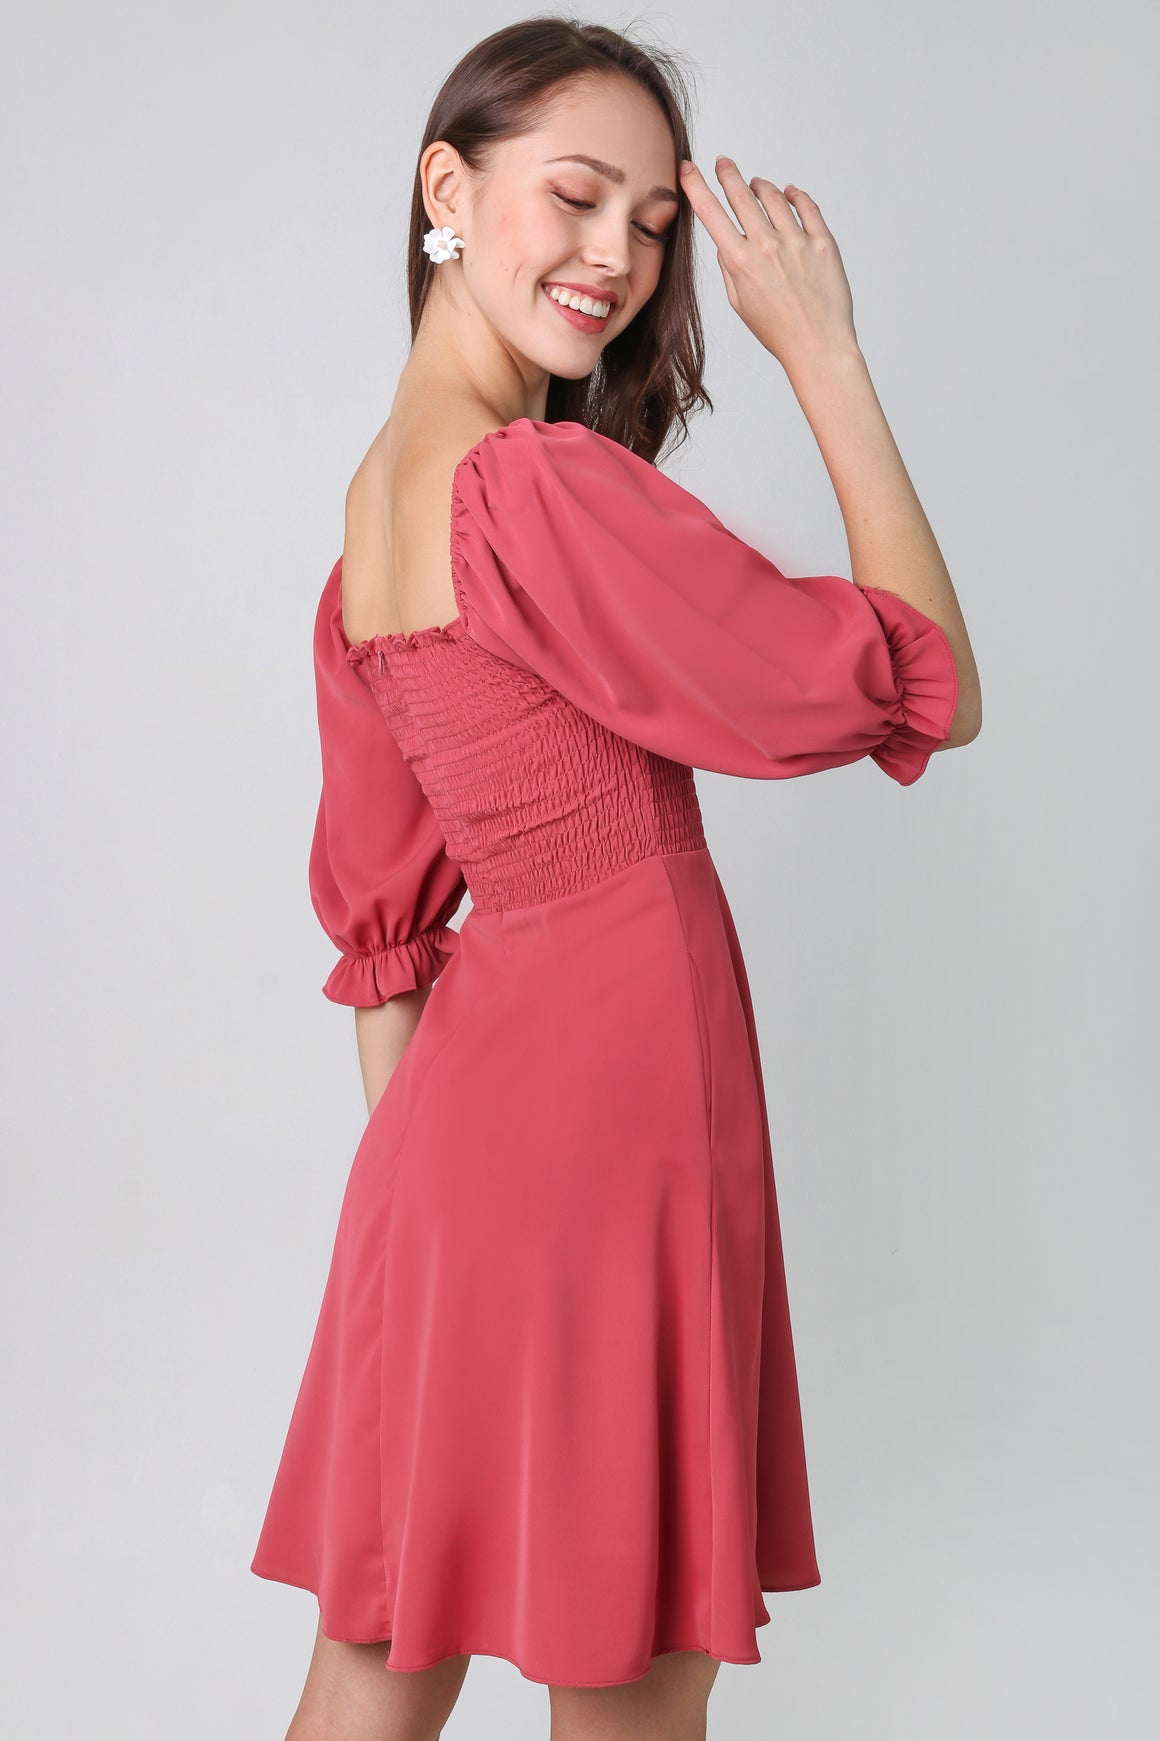 Delcinea Smocked Dress in Rosewood